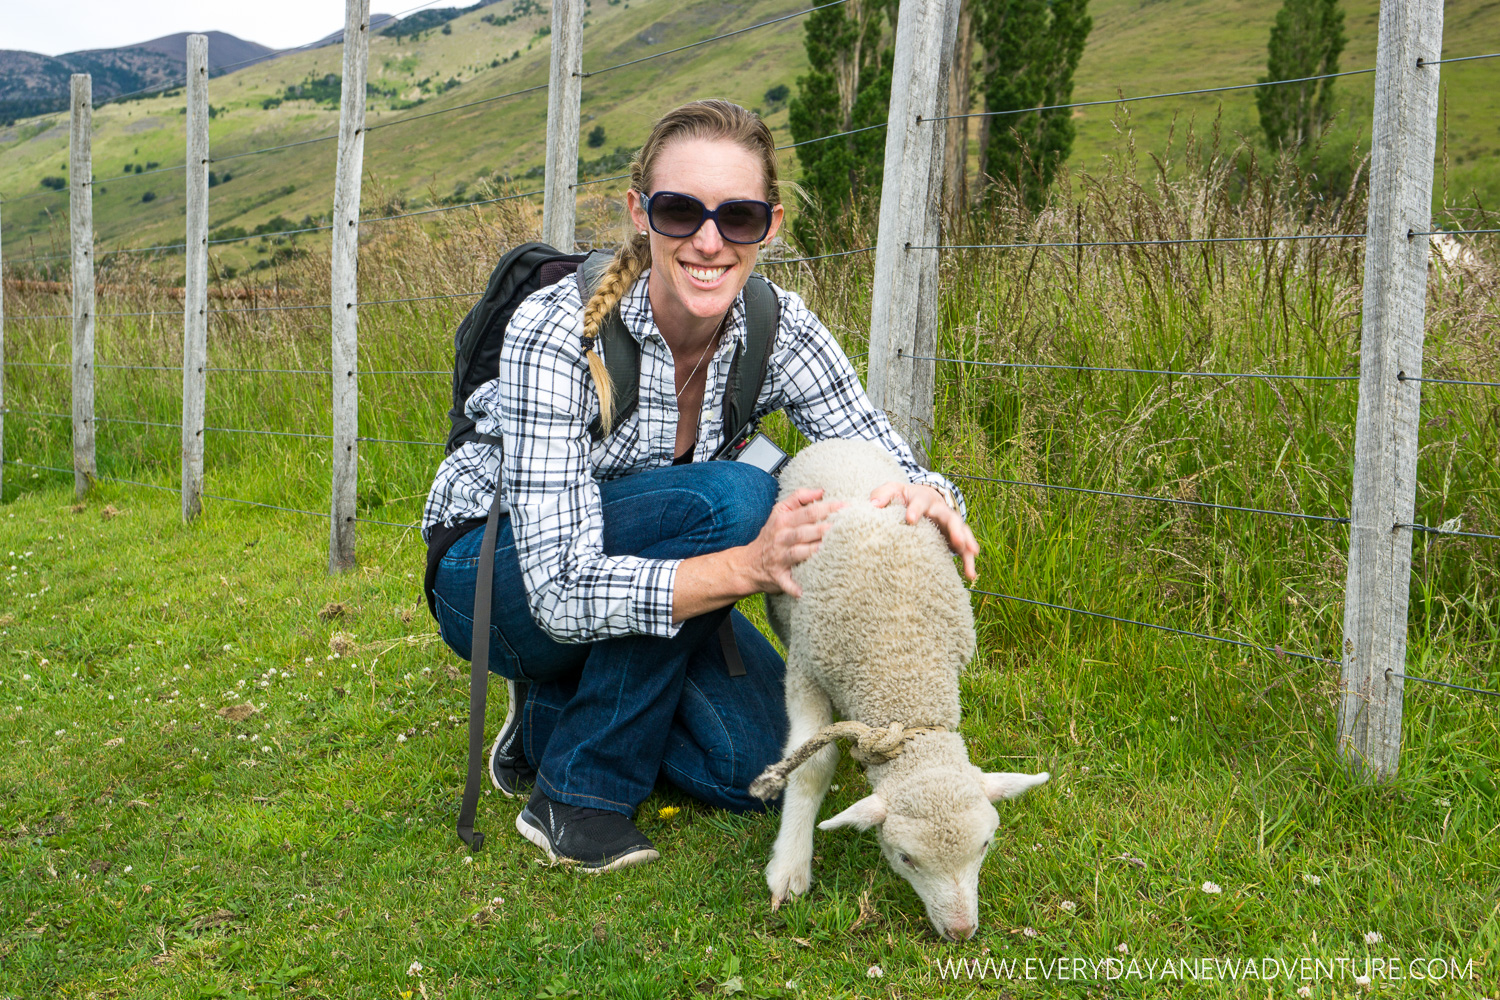 This orphaned baby lamb was found by one of the gauchos who bottle feeds her. She follows him around like a puppy!